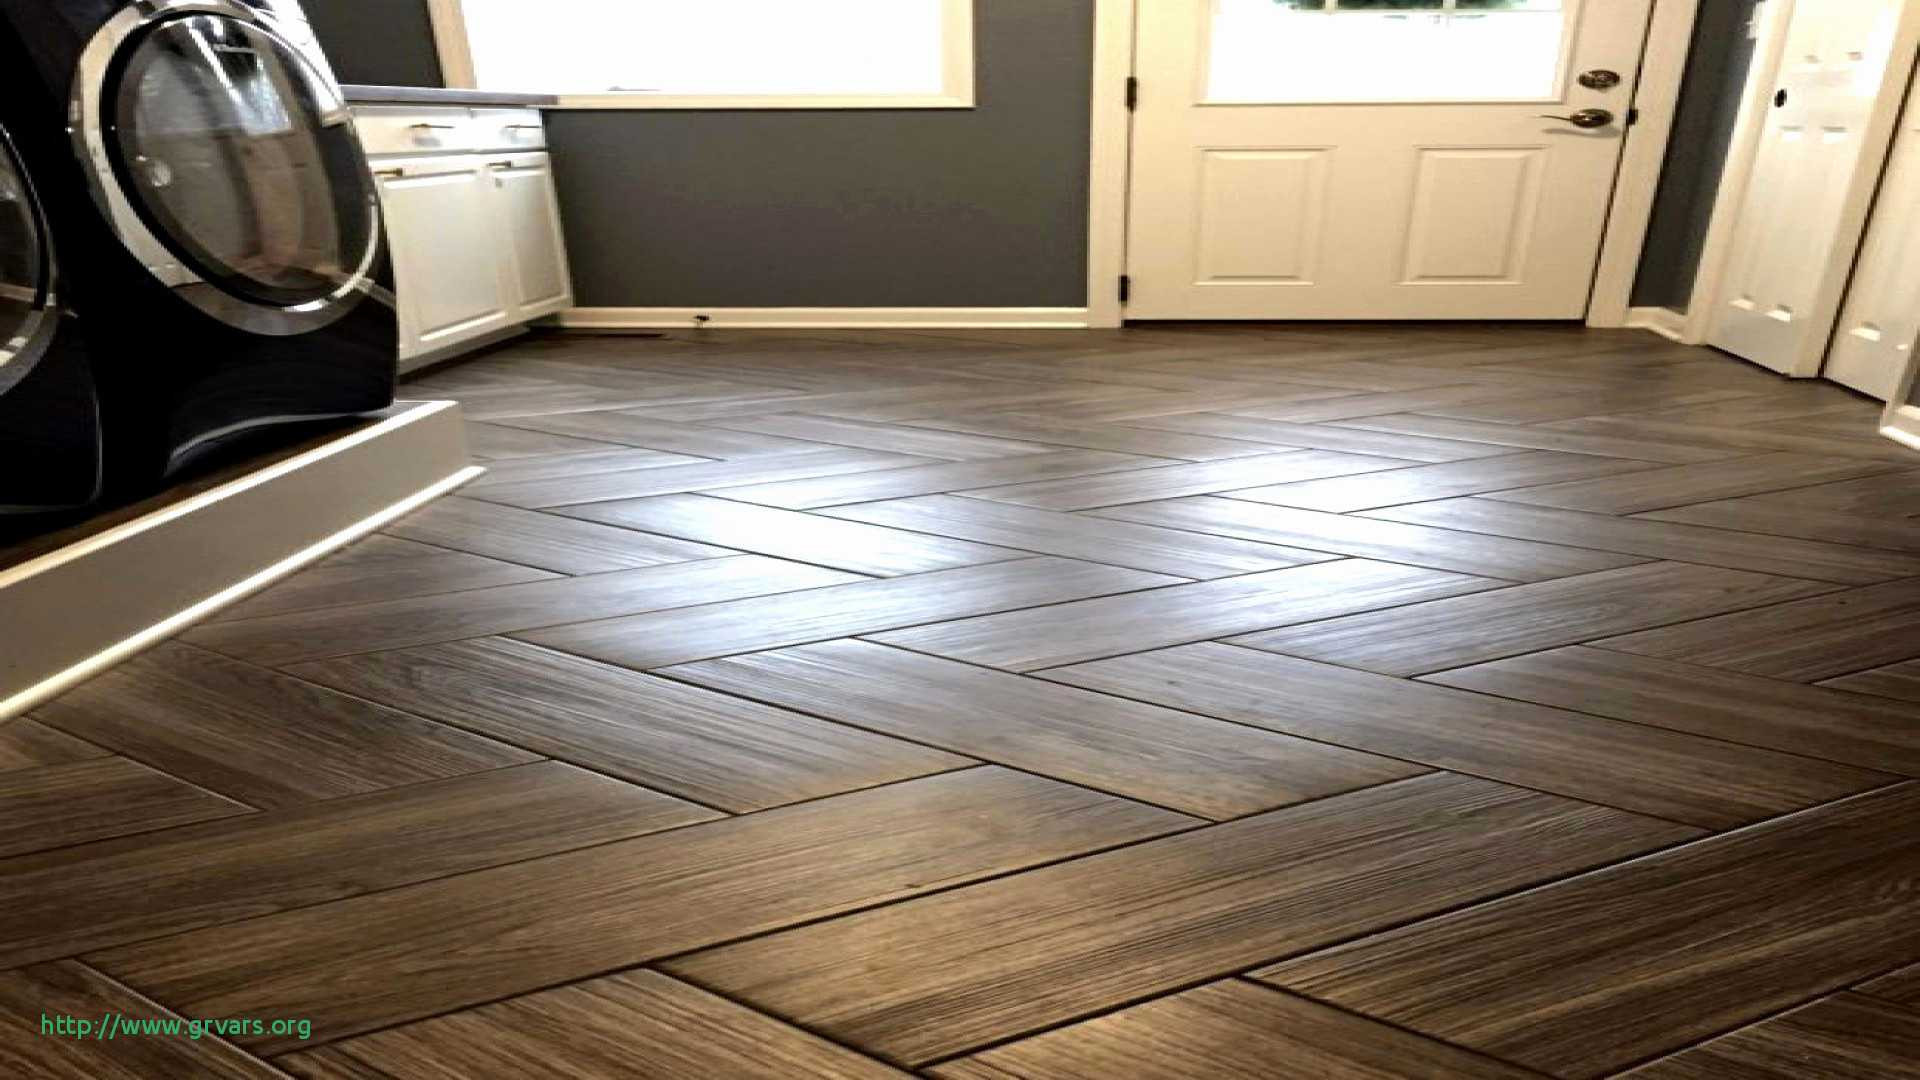 white oak hardwood flooring cost of 16 charmant step by step hardwood floor installation ideas blog within kitchen floor tiles home depot elegant s media cache ak0 pinimg 736x 43 0d 97 best wood and tile floor cool lovely white oak hardwood